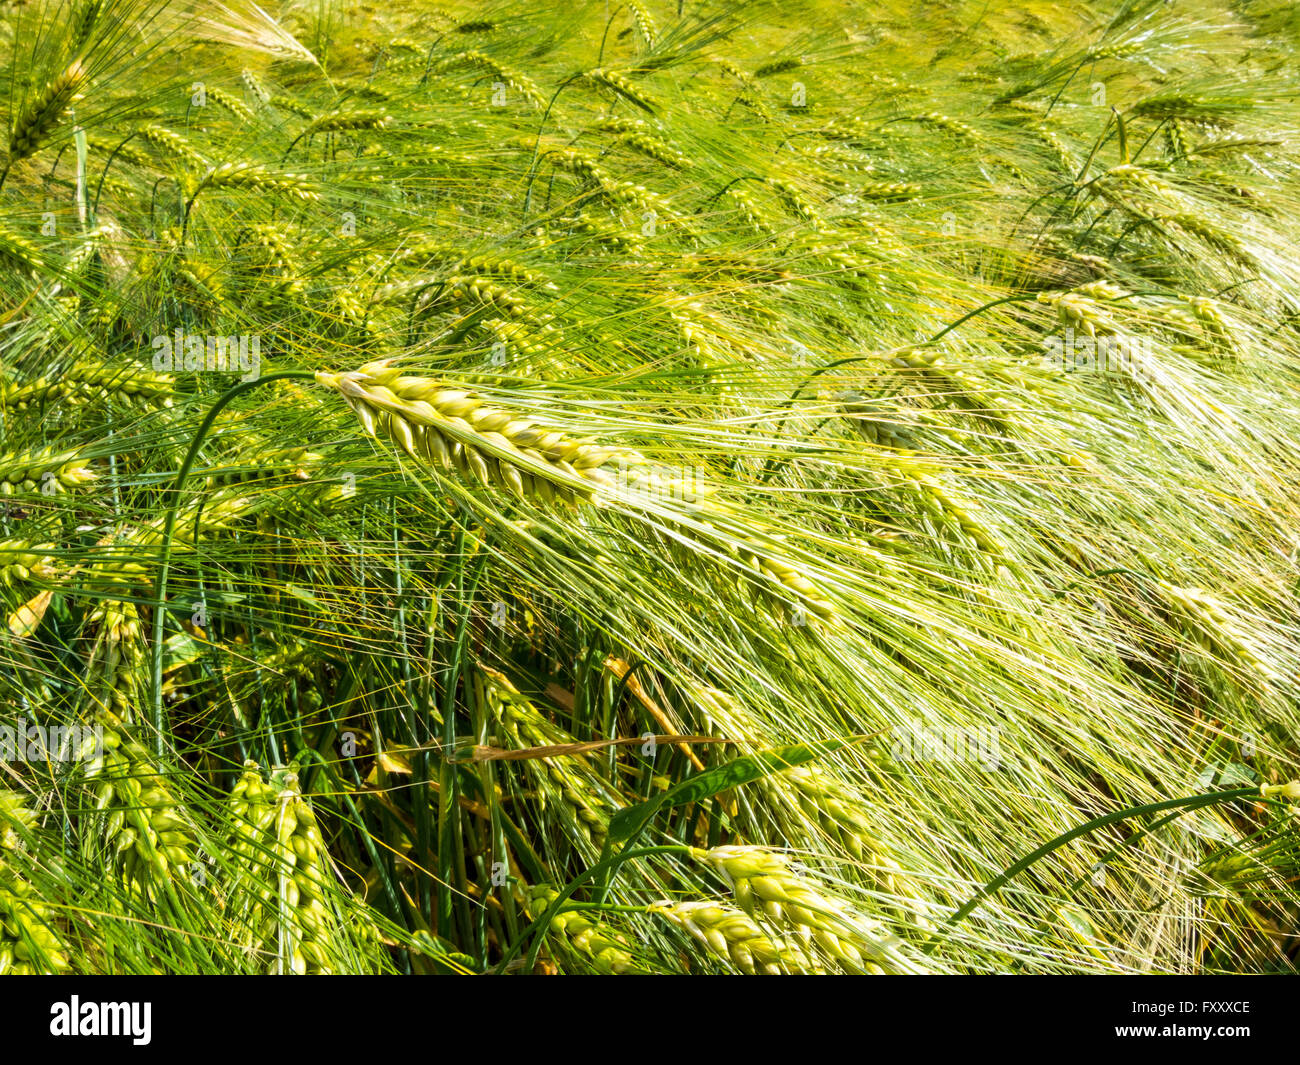 Barley ear with awns on a barley field - Stock Image